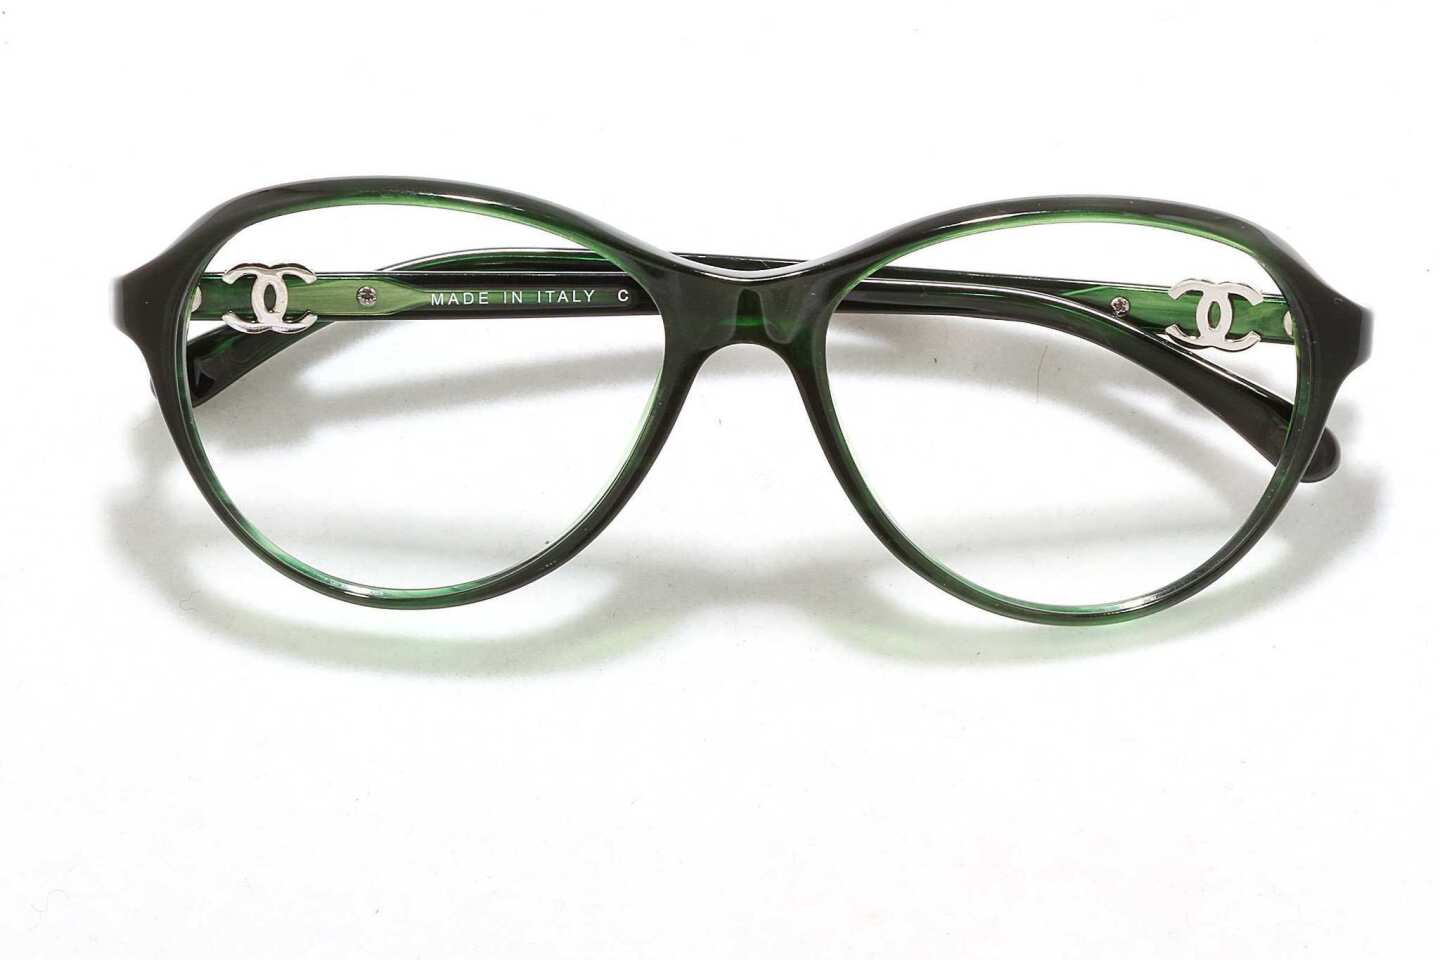 Chanel CH3226, acetate in green, $360.